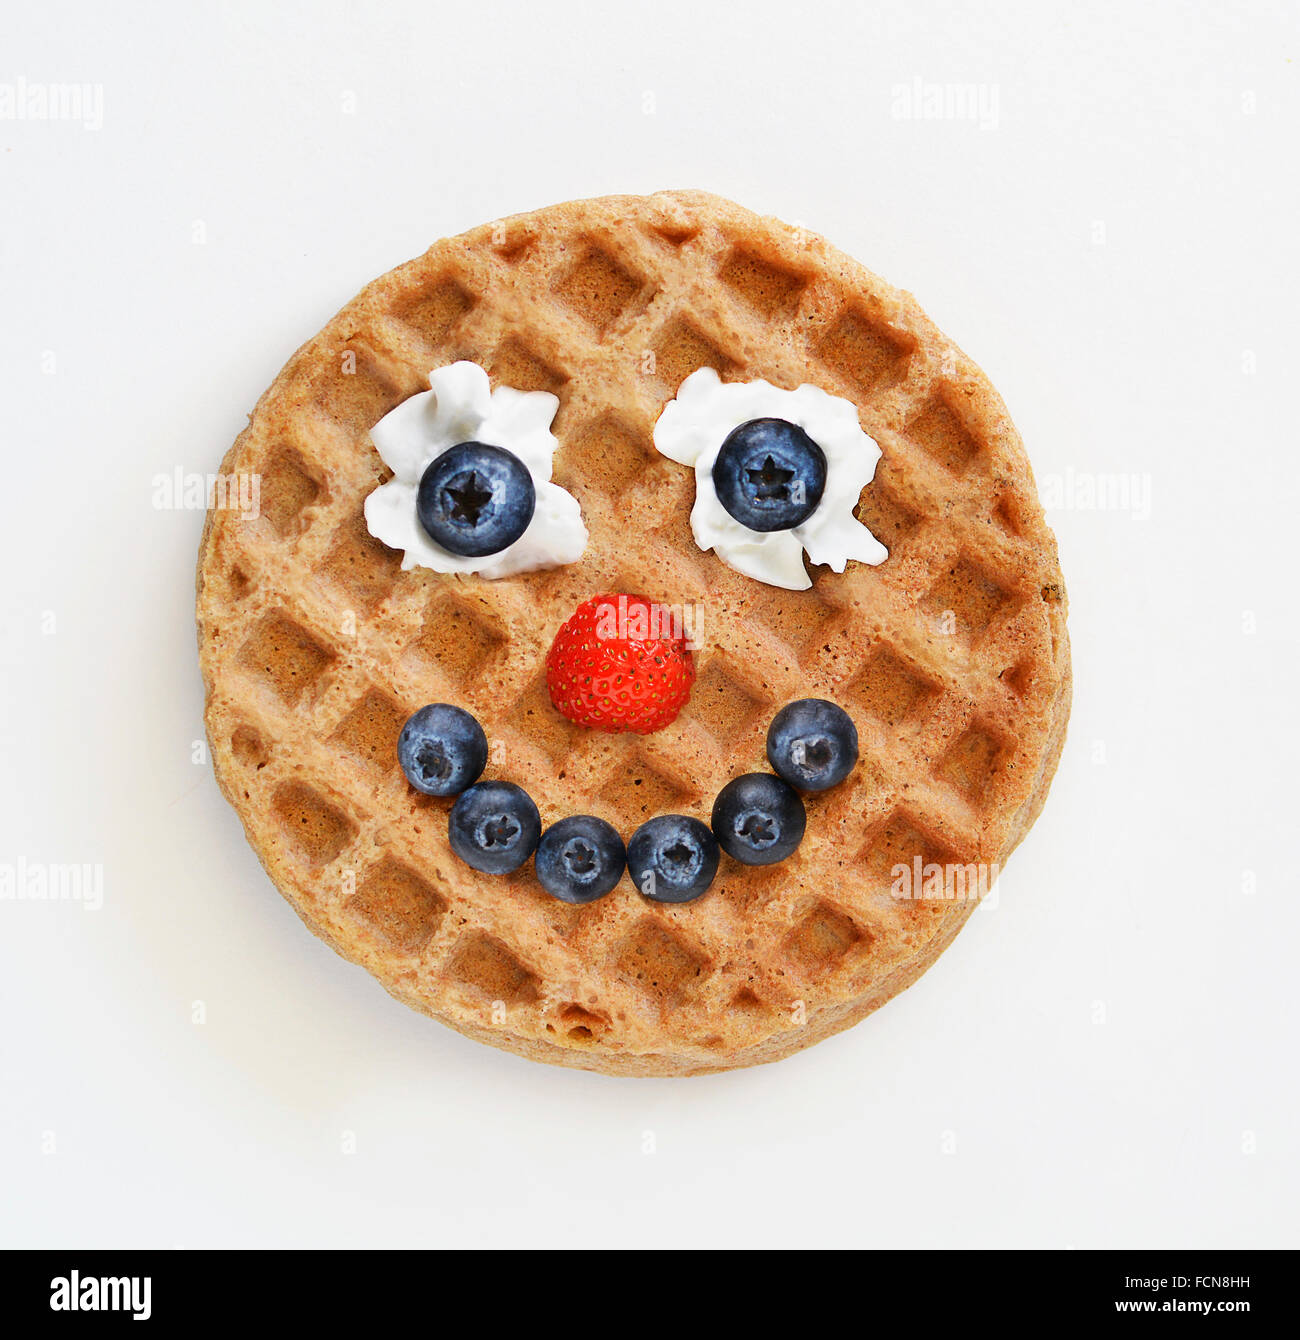 Gaufre avec un visage heureux à base de fruits Photo Stock